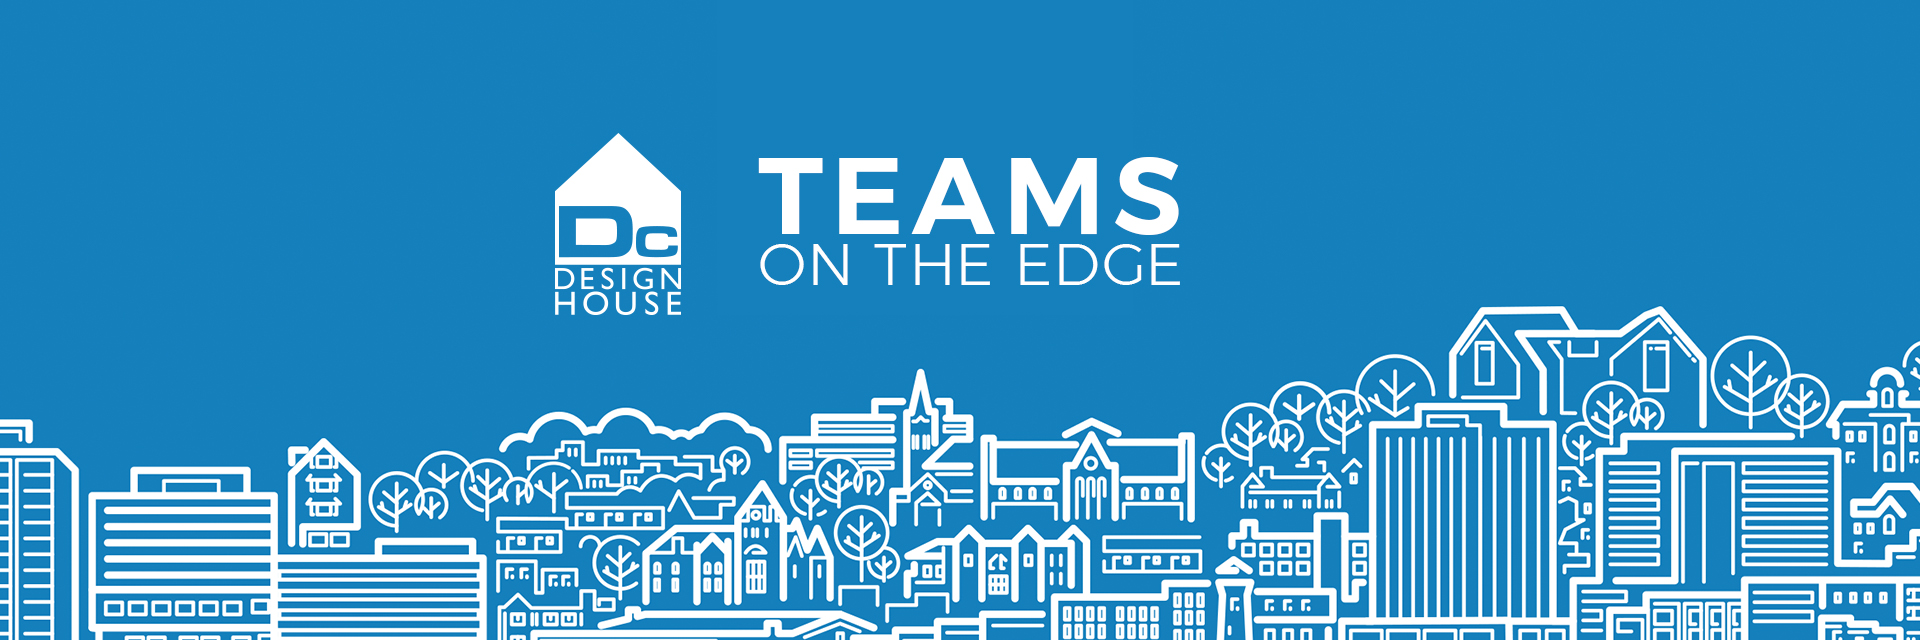 Dc Presents: Teams on the Edge, Episode 5: Sean Quinn, Senior Graphic Designer